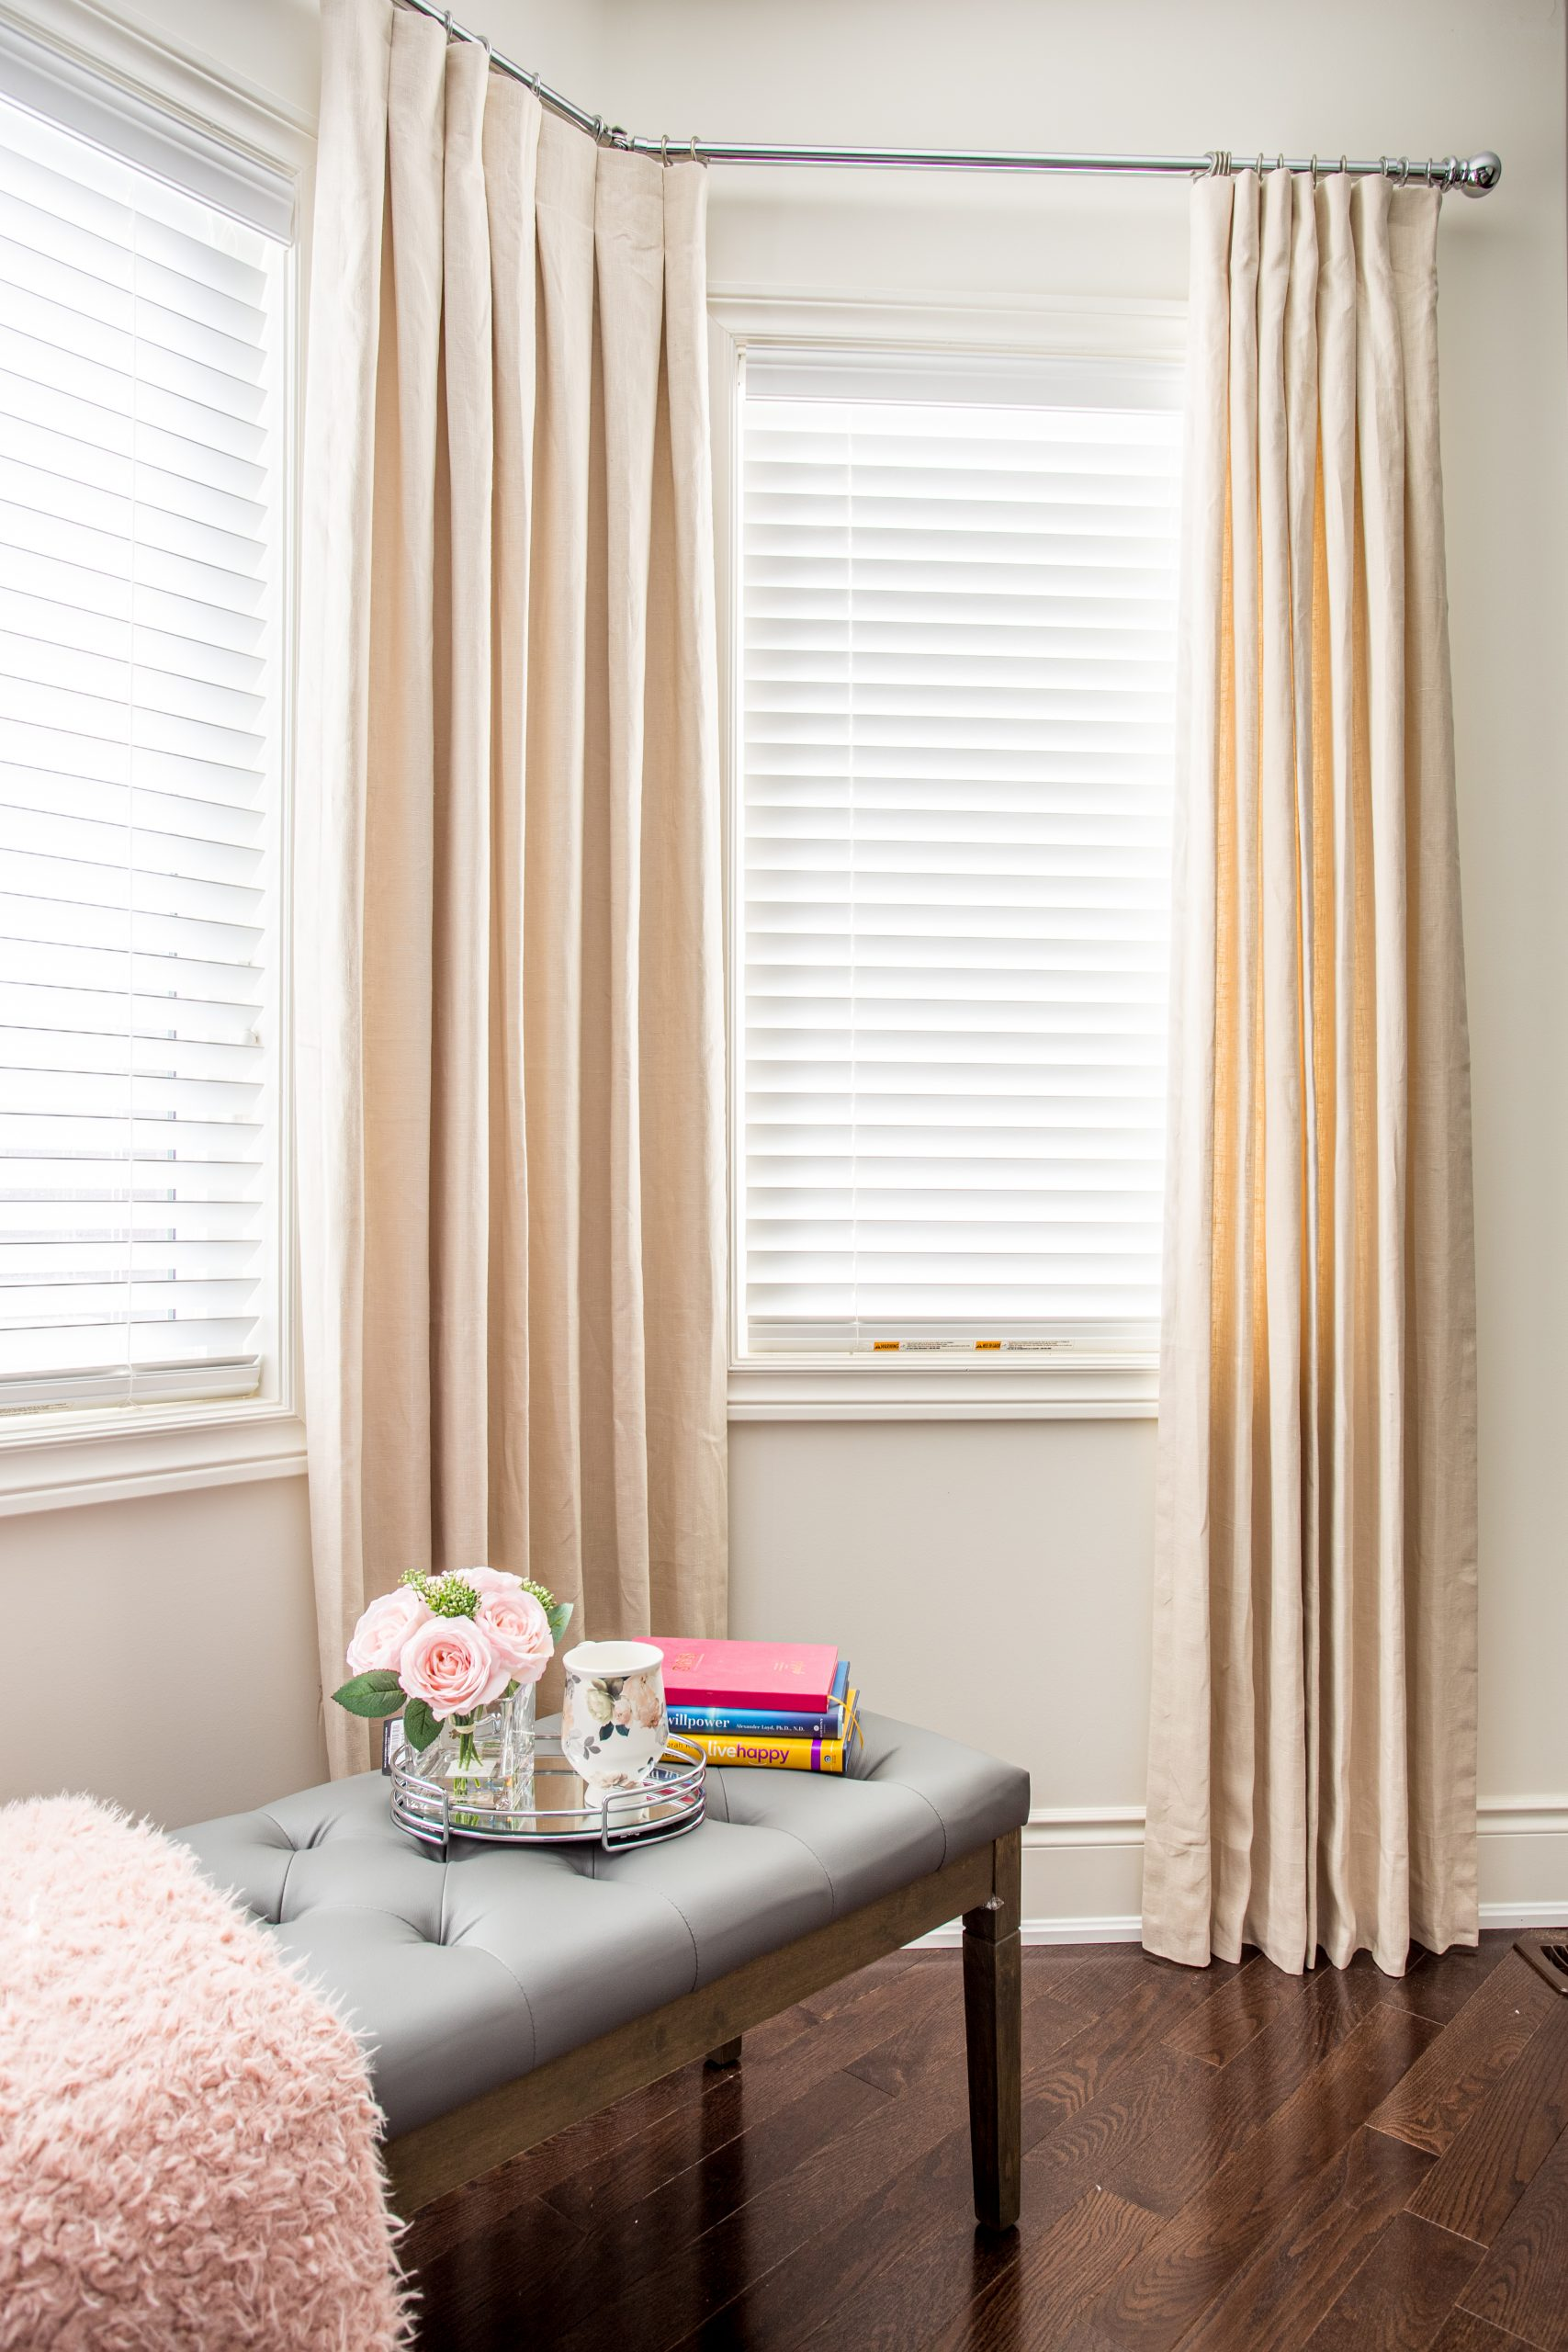 SOHO Linen drapes in natural color